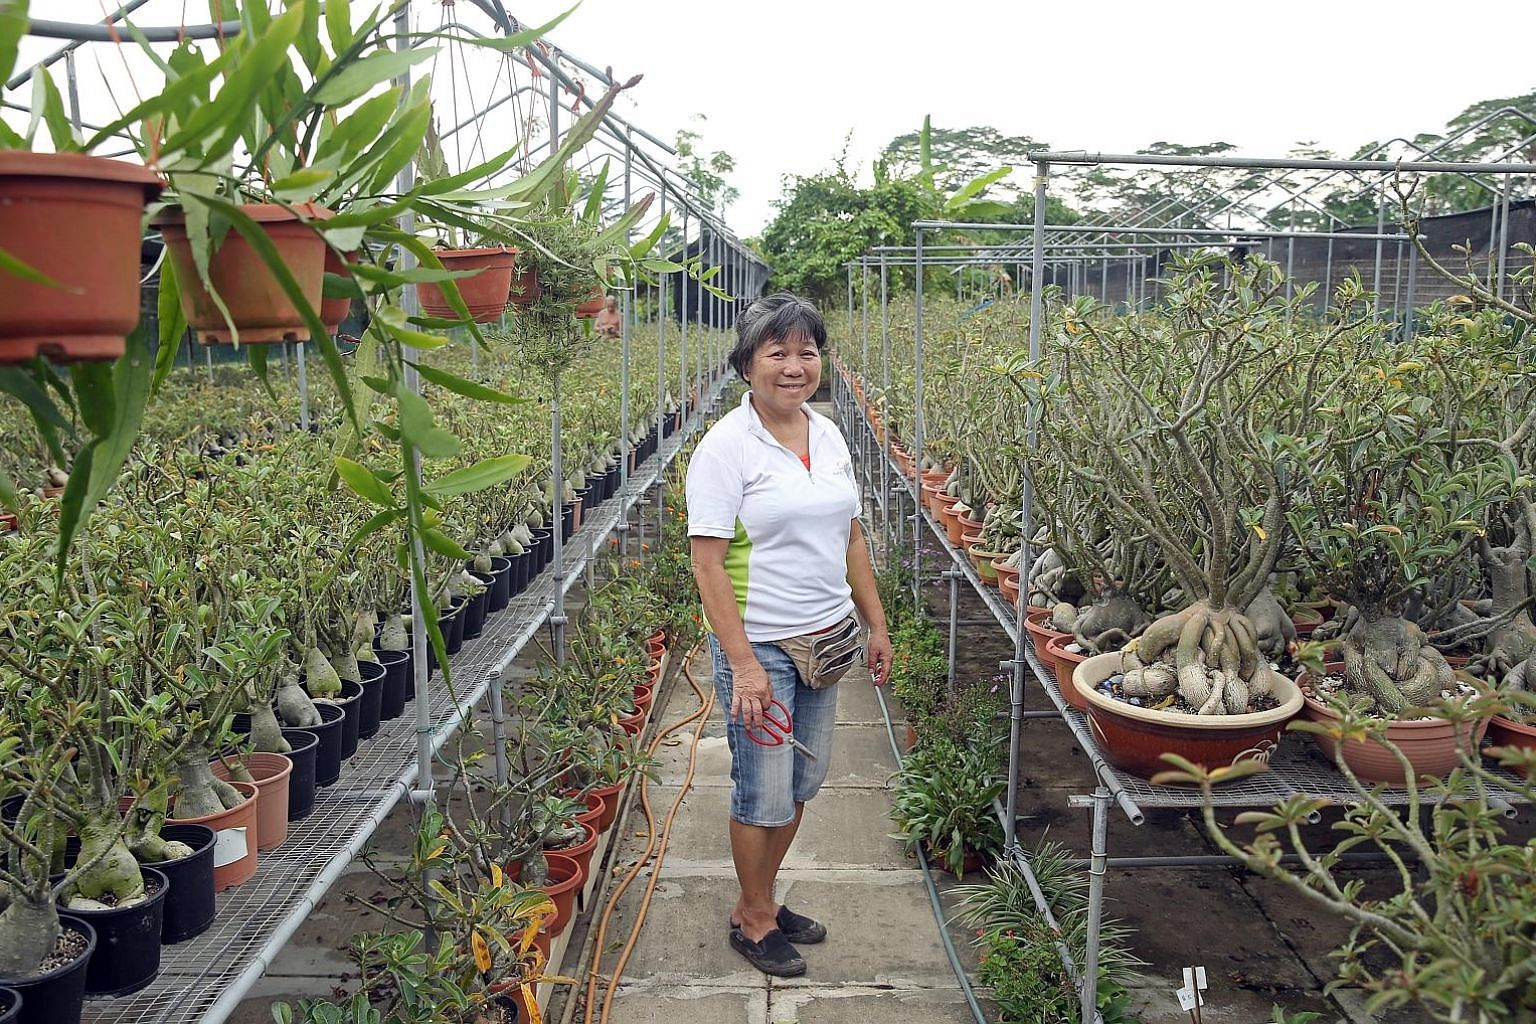 Among the herbs that retiree Kathy Chua grows are lemon myrtle and lemon verbena, which are more commonly grown in cooler climates.